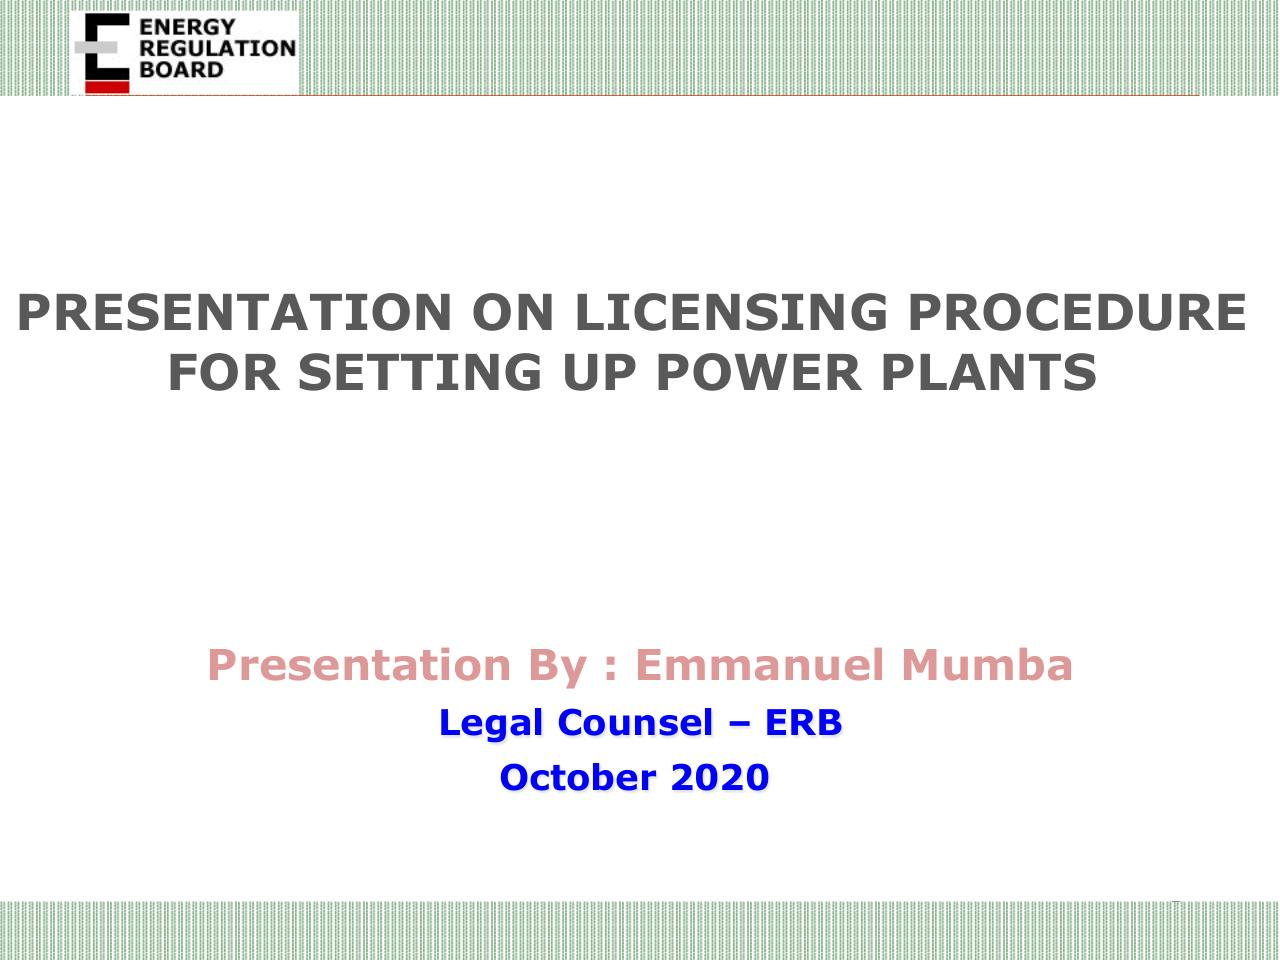 Aperçu du document Presentation on Licensing  Procedure for Power Plants_Oct 2020.pdf - page 1/10